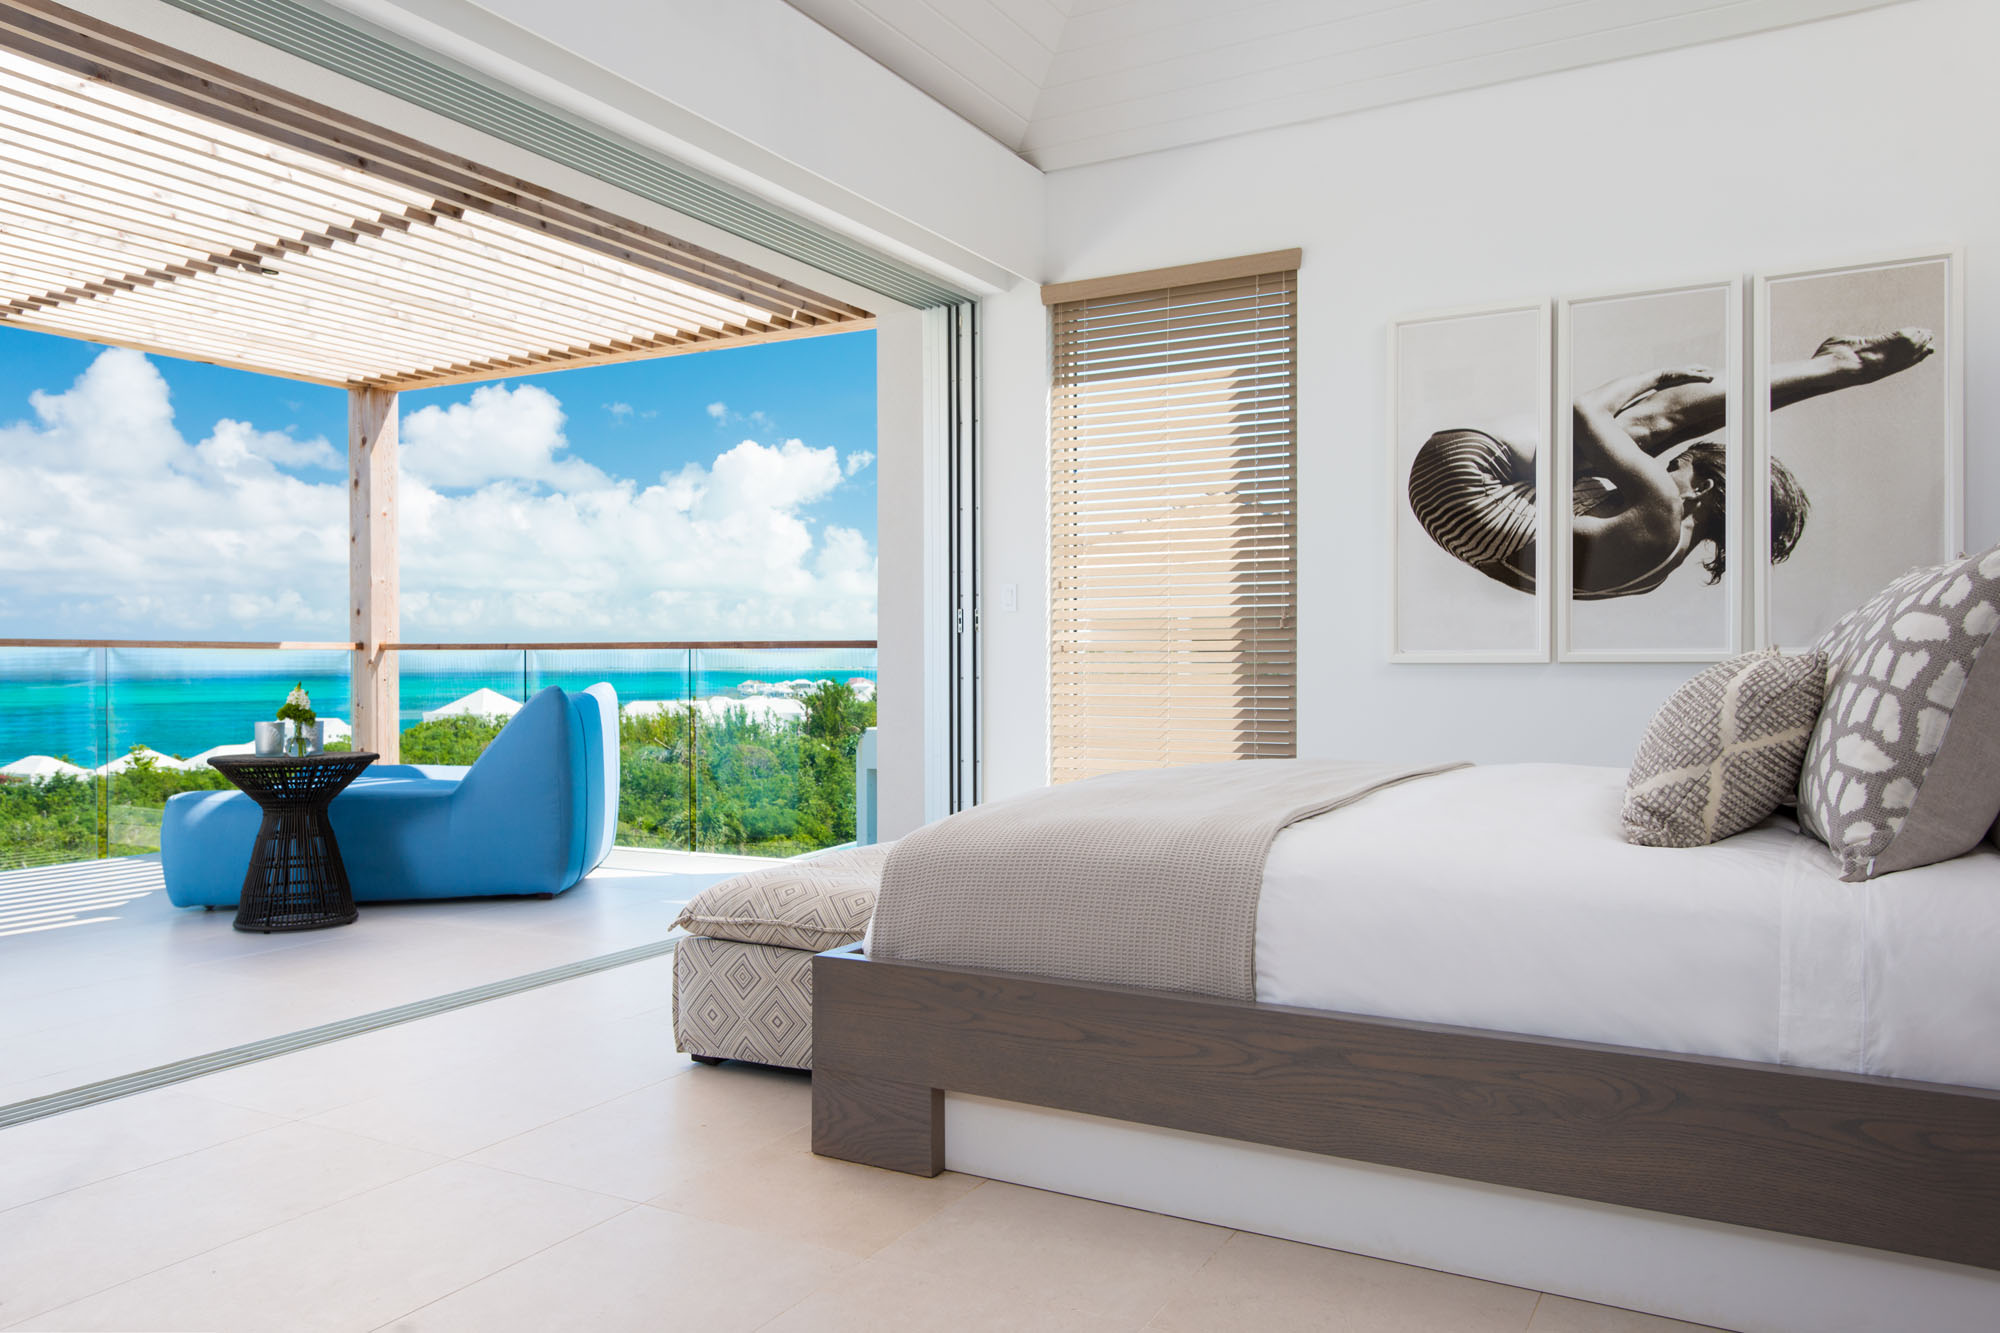 Relax in the bathtubs of these Turks and Caicos luxury ocean view villa rentals.